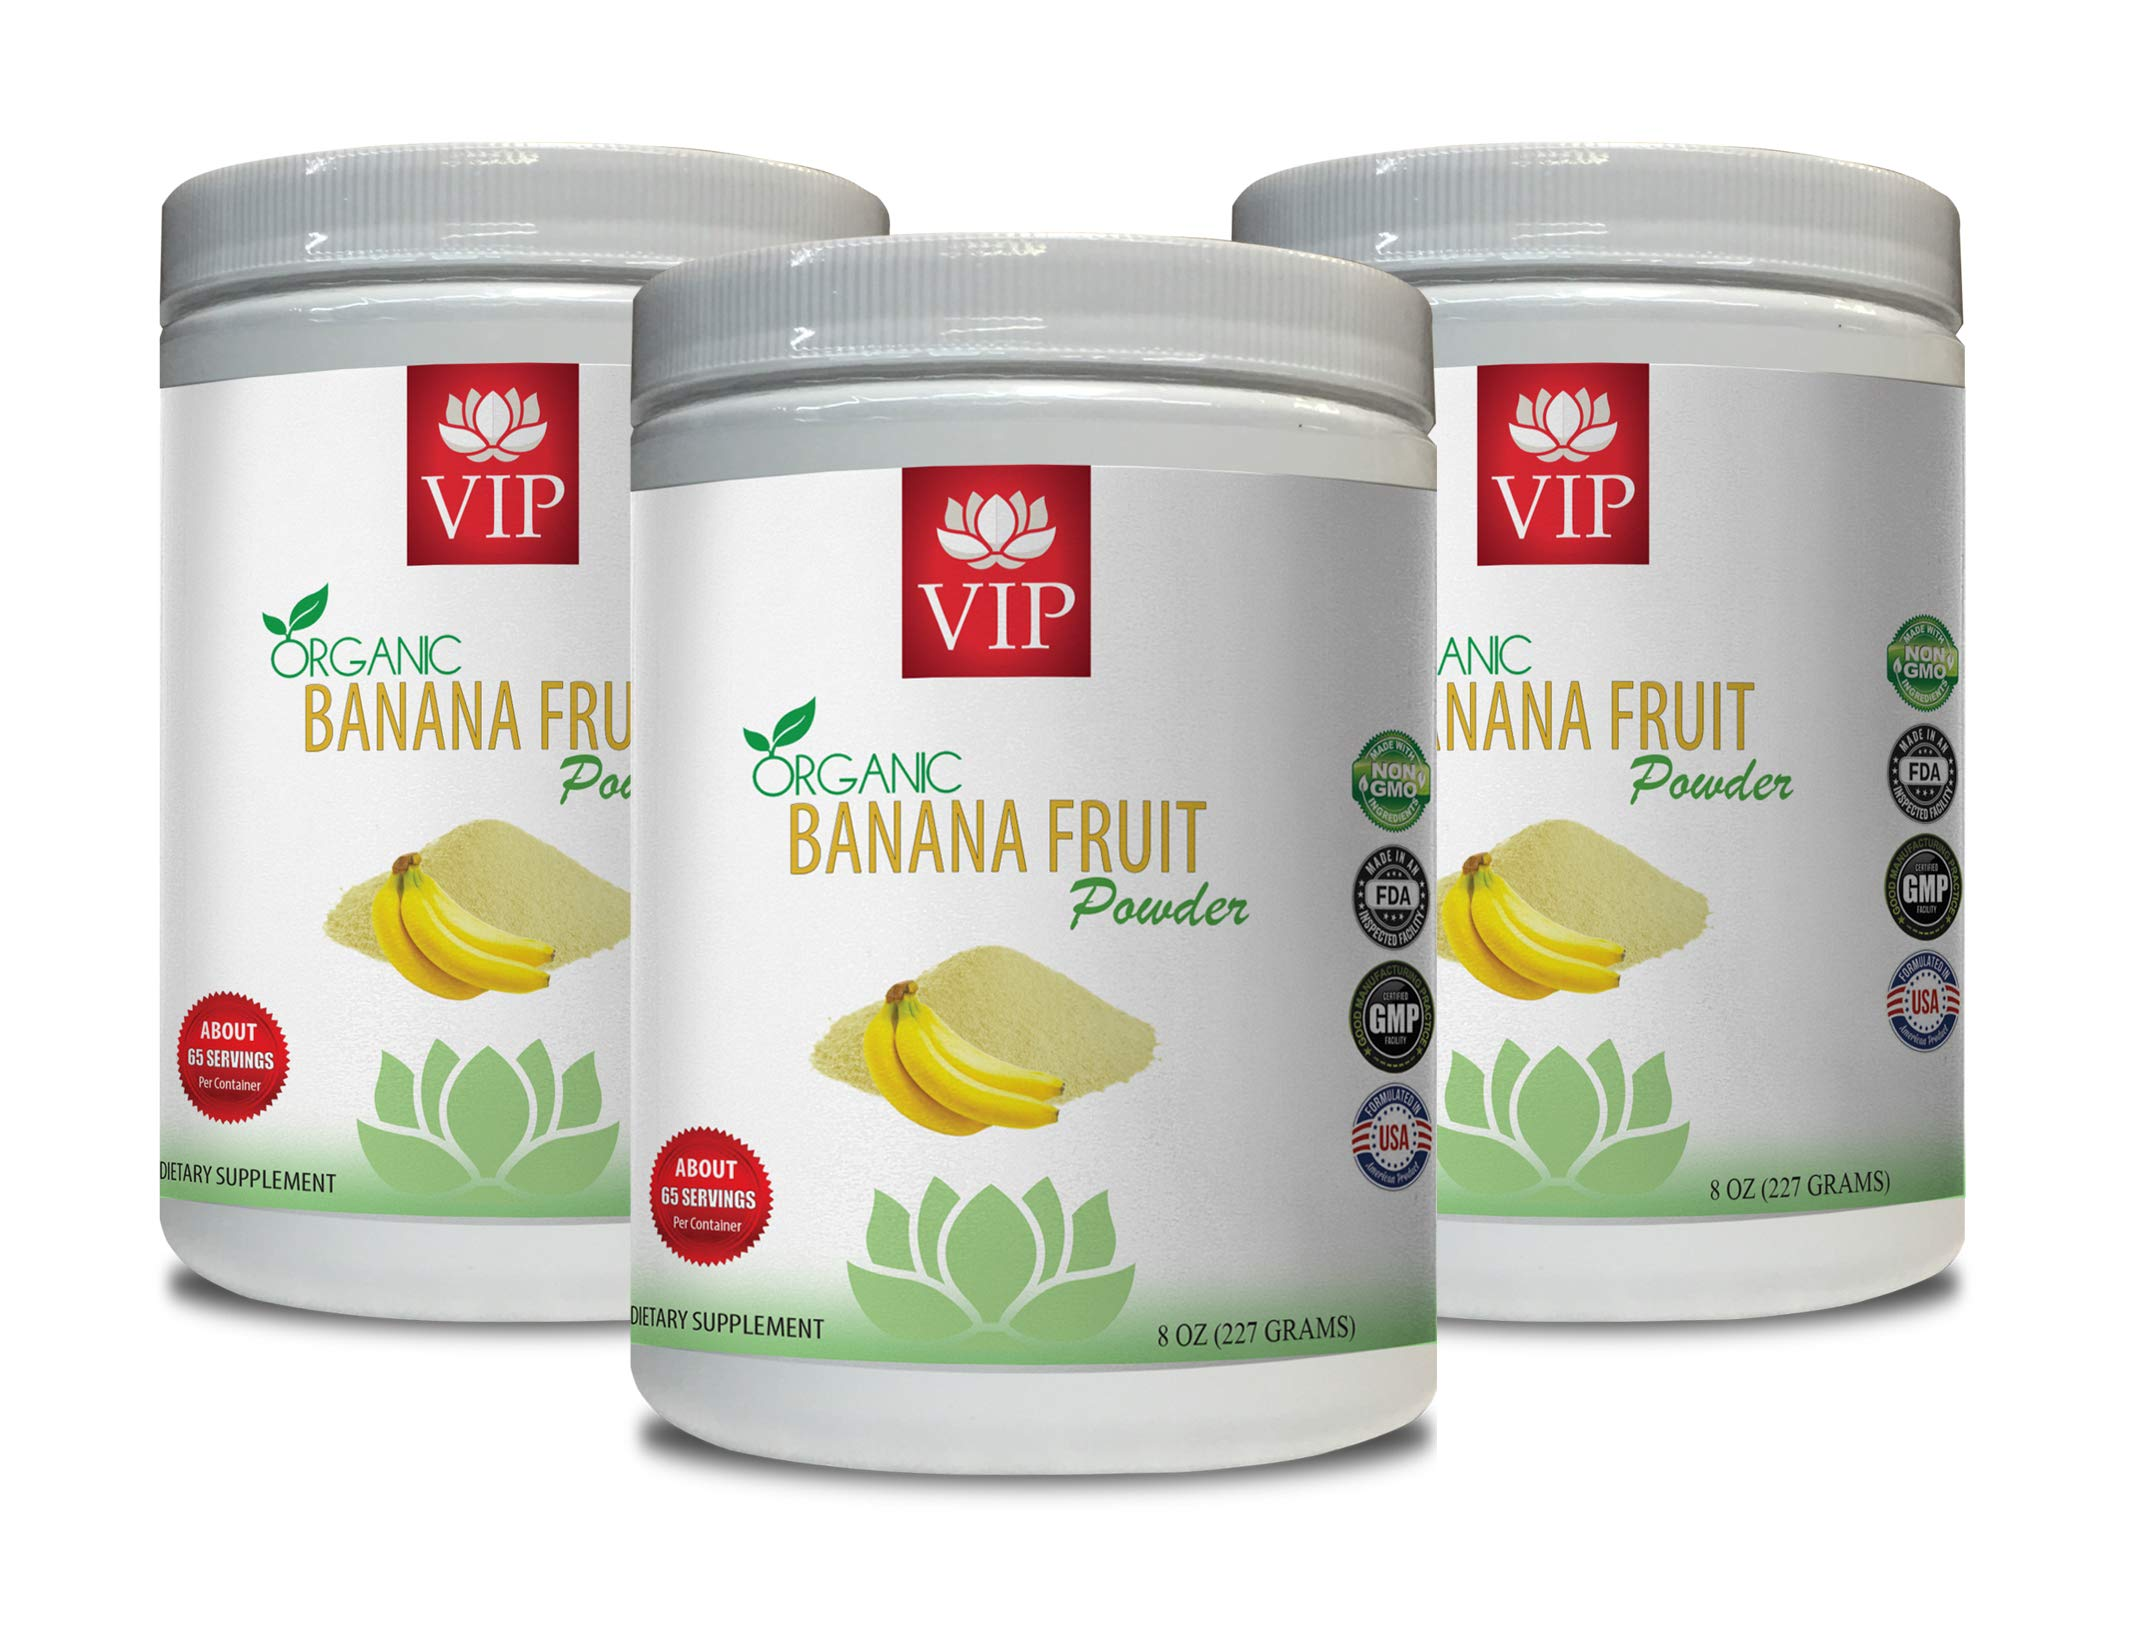 Blood Pressure Vitamin Supplements - Banana Fruit Organic Powder - Digestive Wellness - 3 Cans 24 OZ (195 Servings)